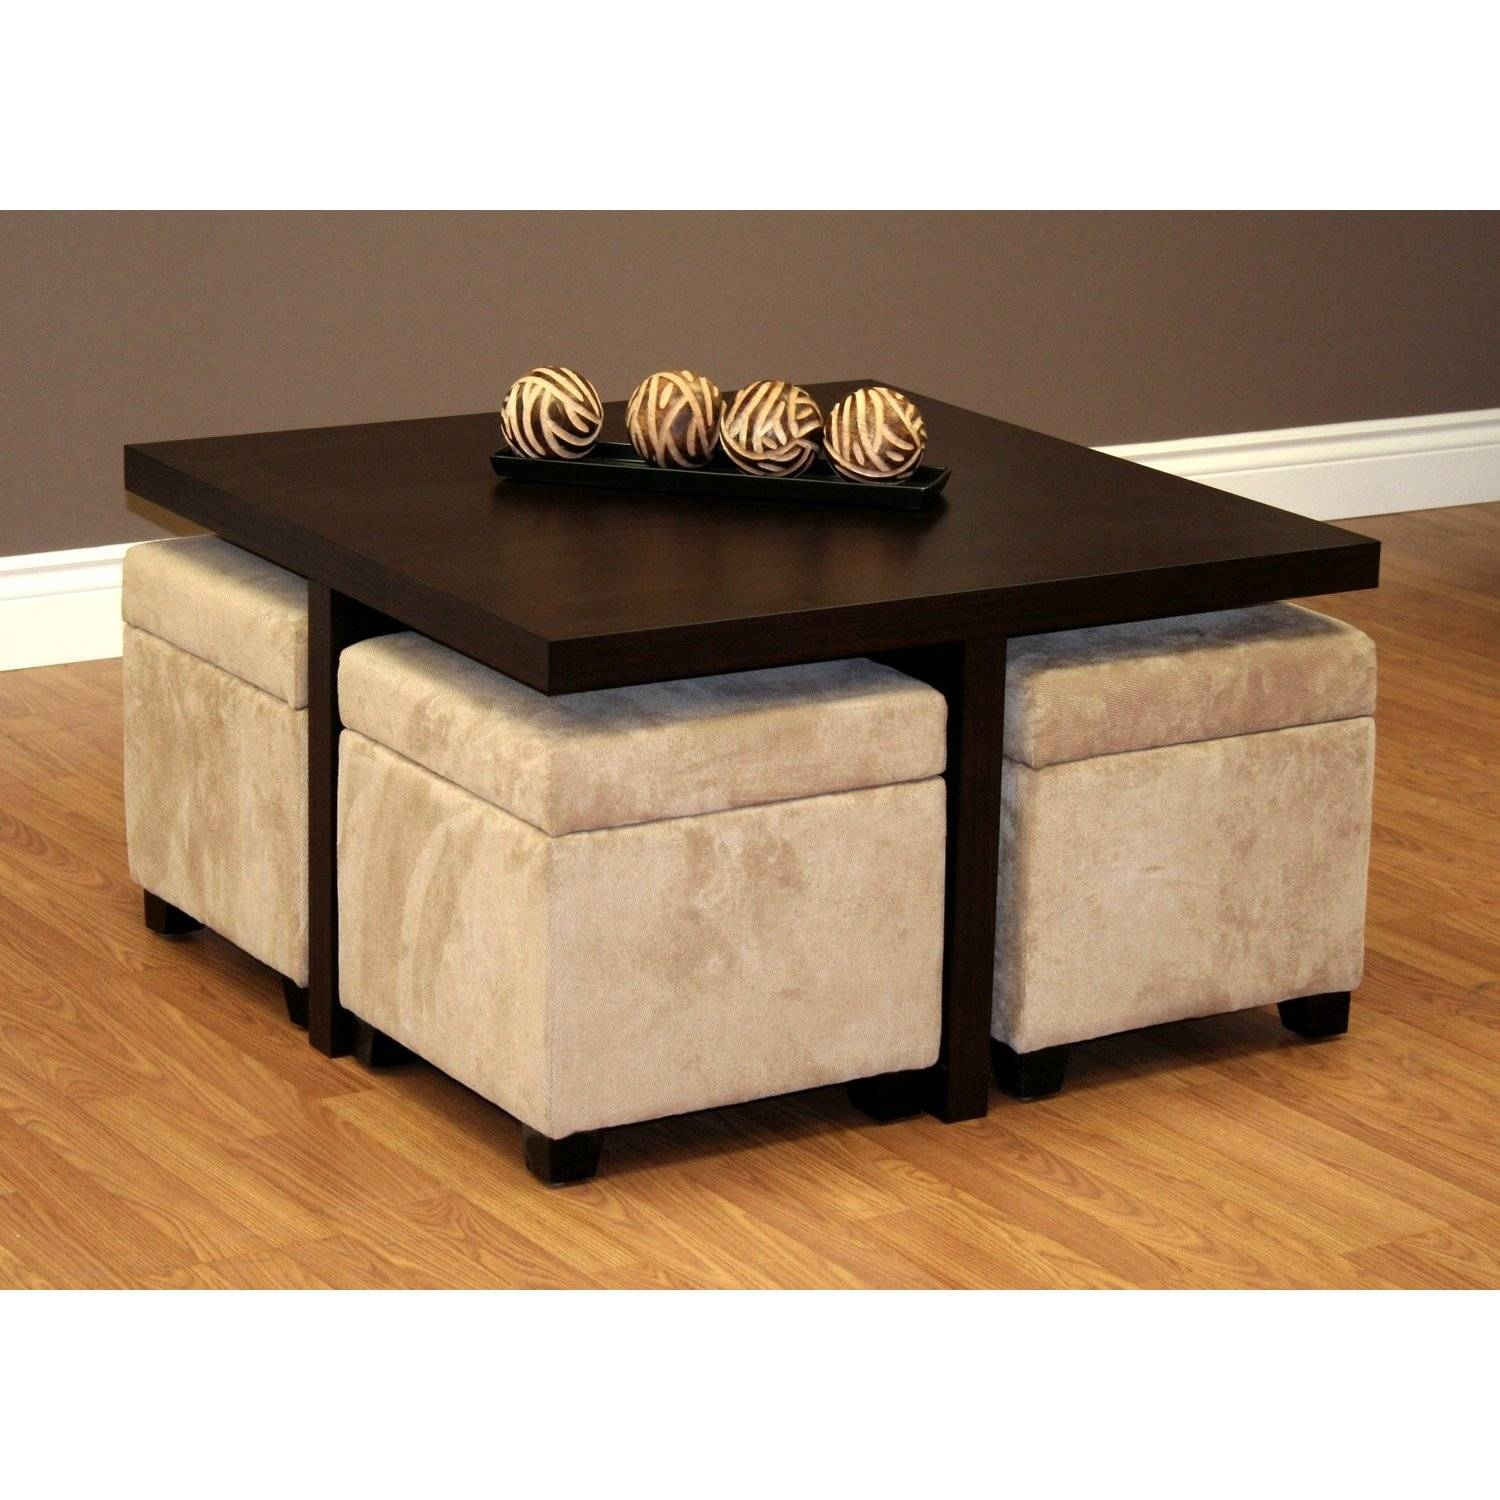 Furniture: Luxury Coffee Table With Stools For Living Room for Dark Wood Square Coffee Tables (Image 19 of 30)